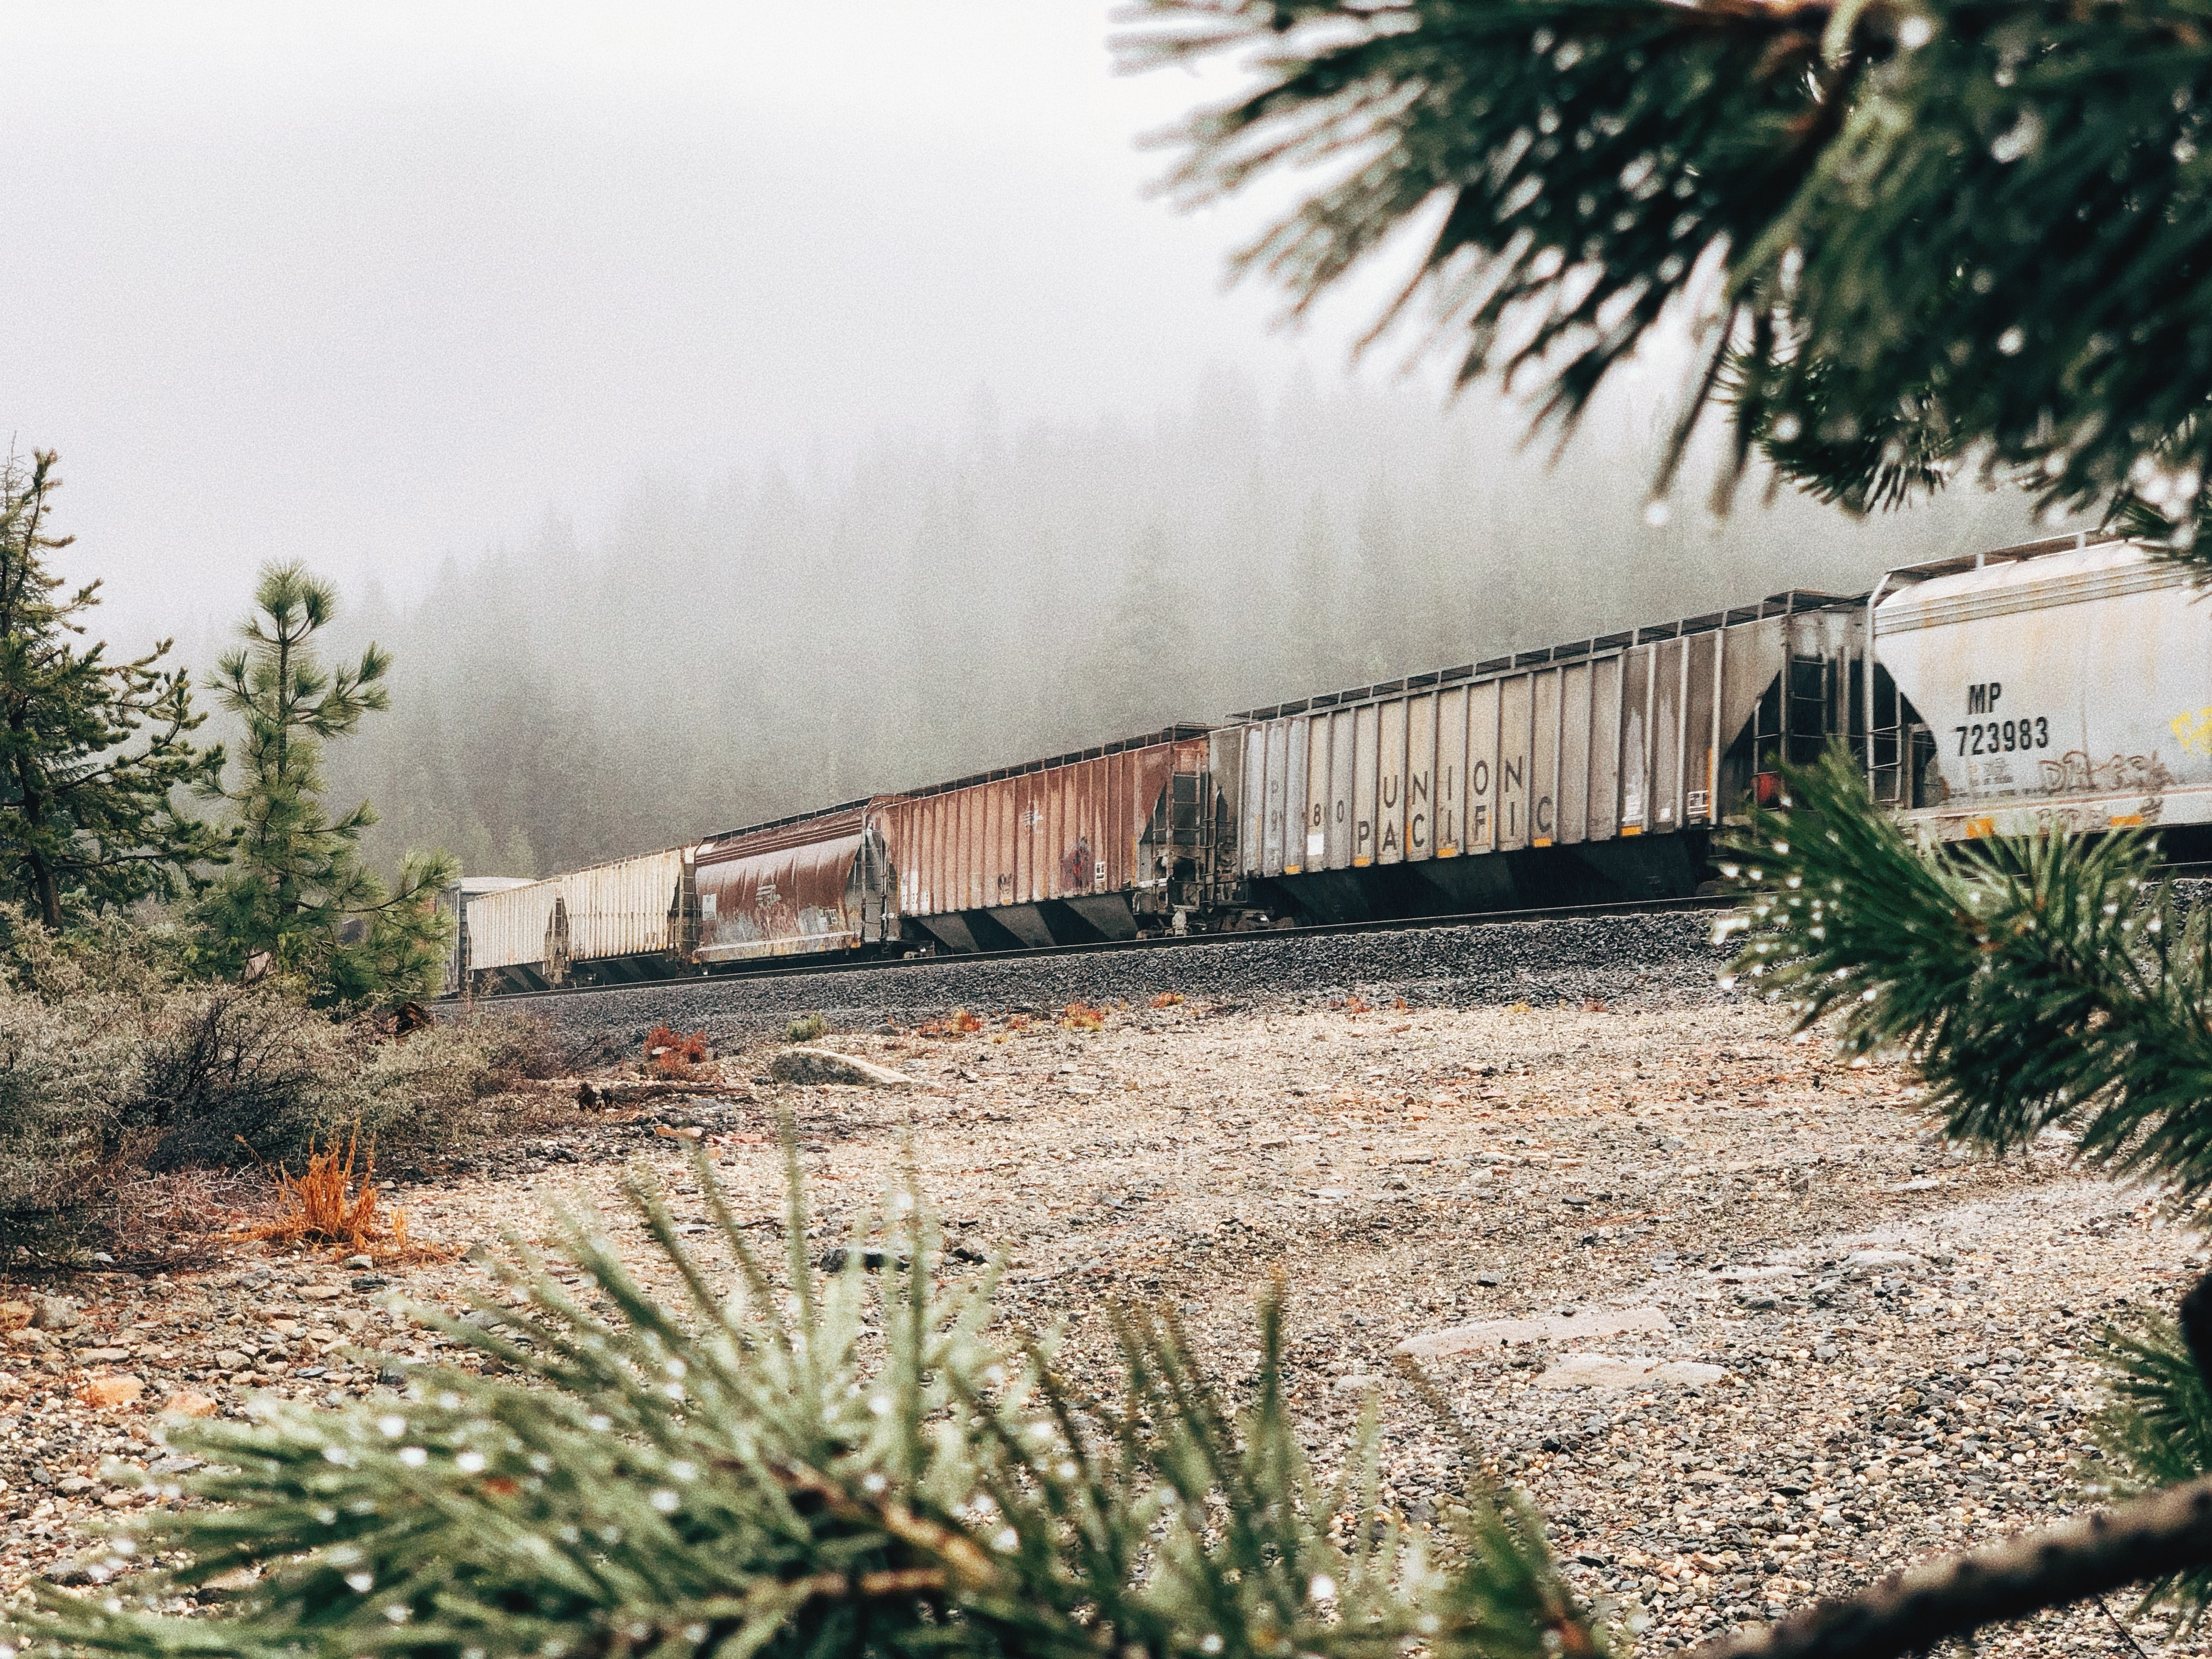 white and brown train in railroad in forest